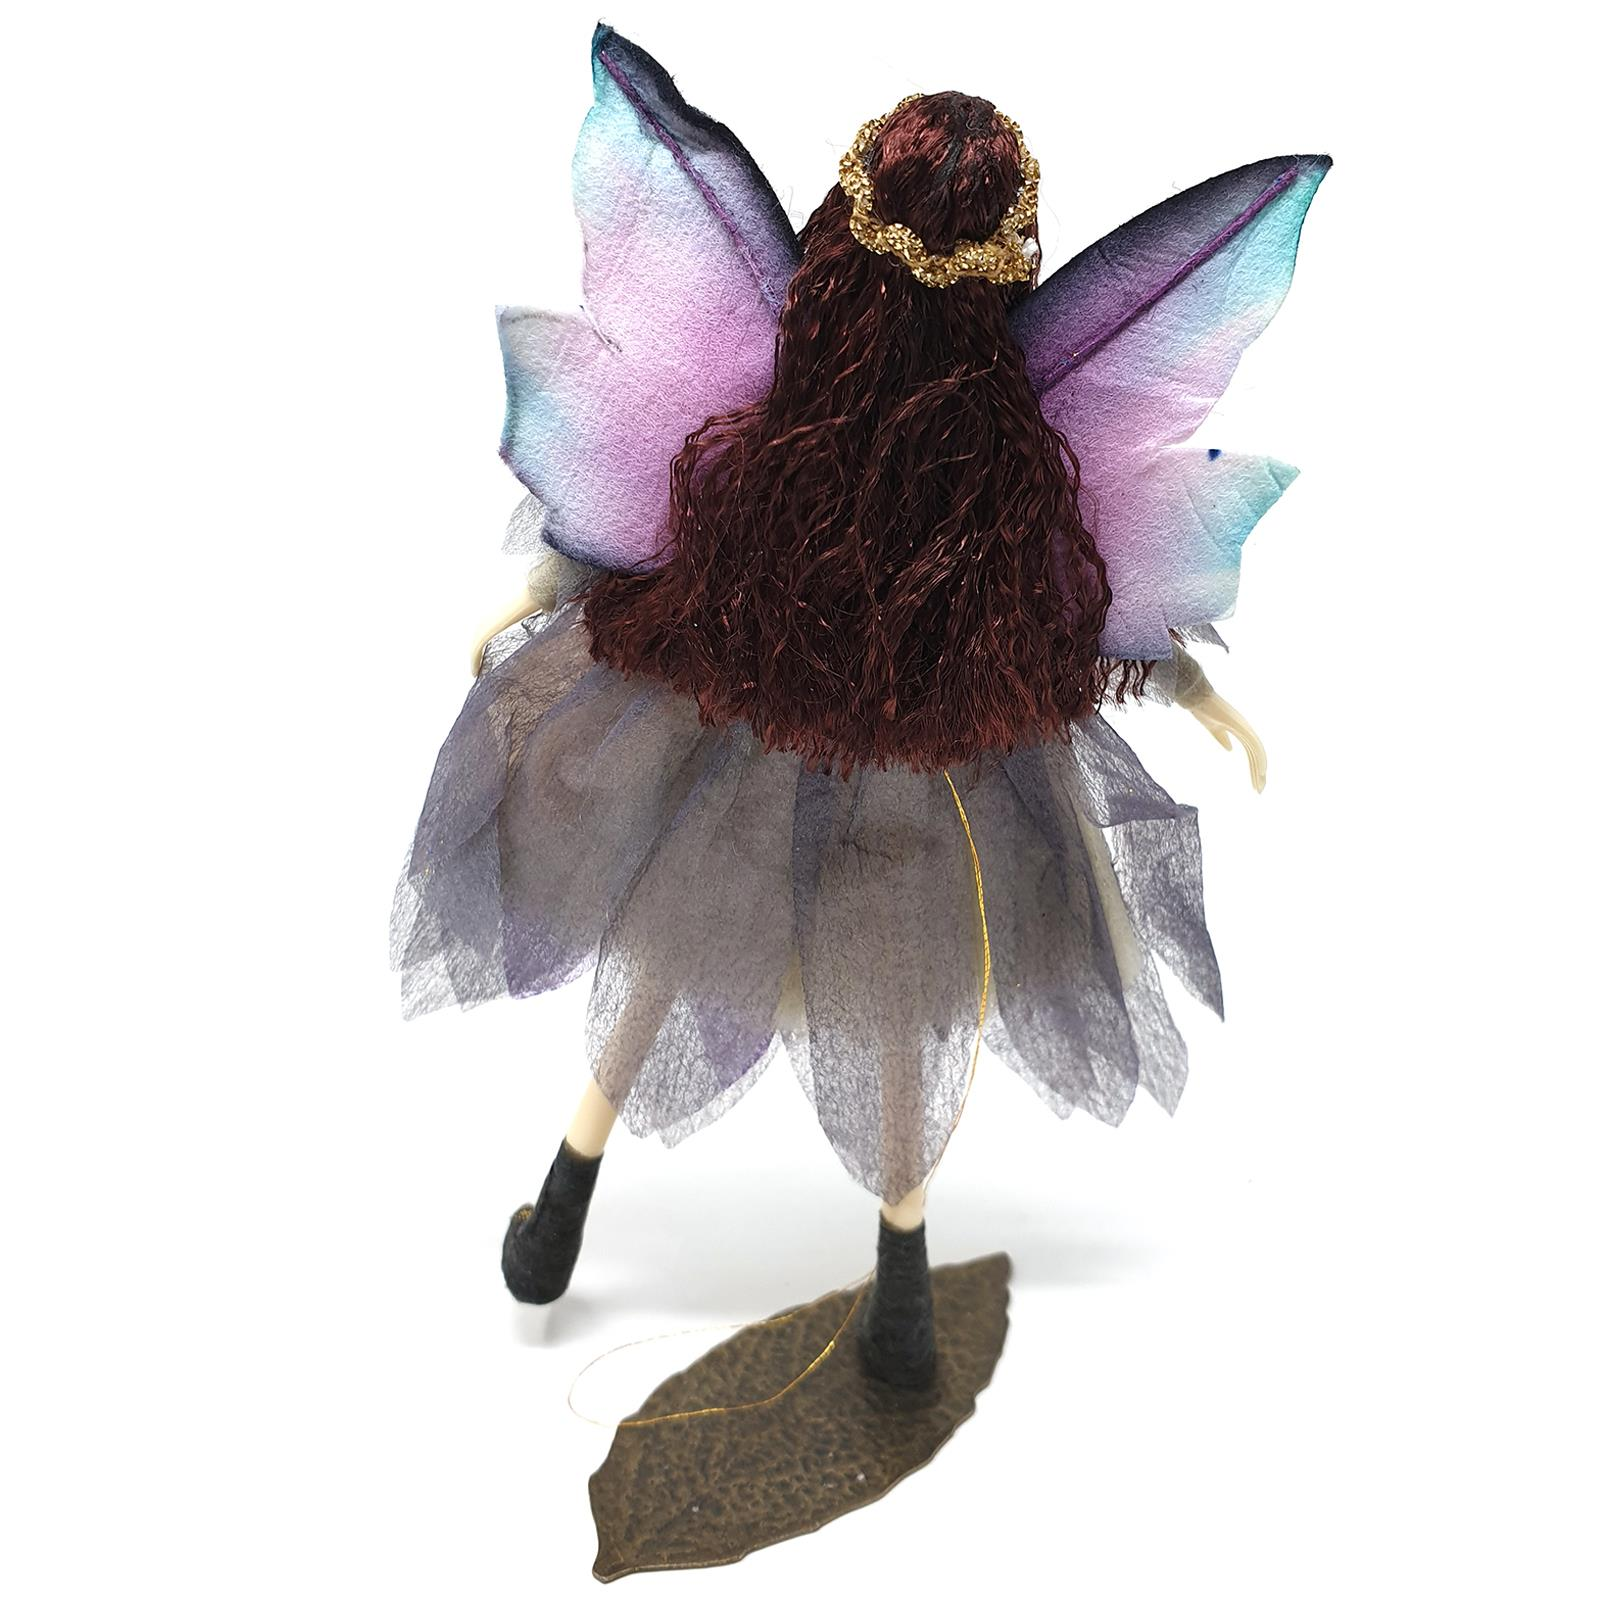 The-Fairy-Family-Collectable-Ornament-Mermaid-Forest-Fairies-Elf-Figurines-Gift thumbnail 37